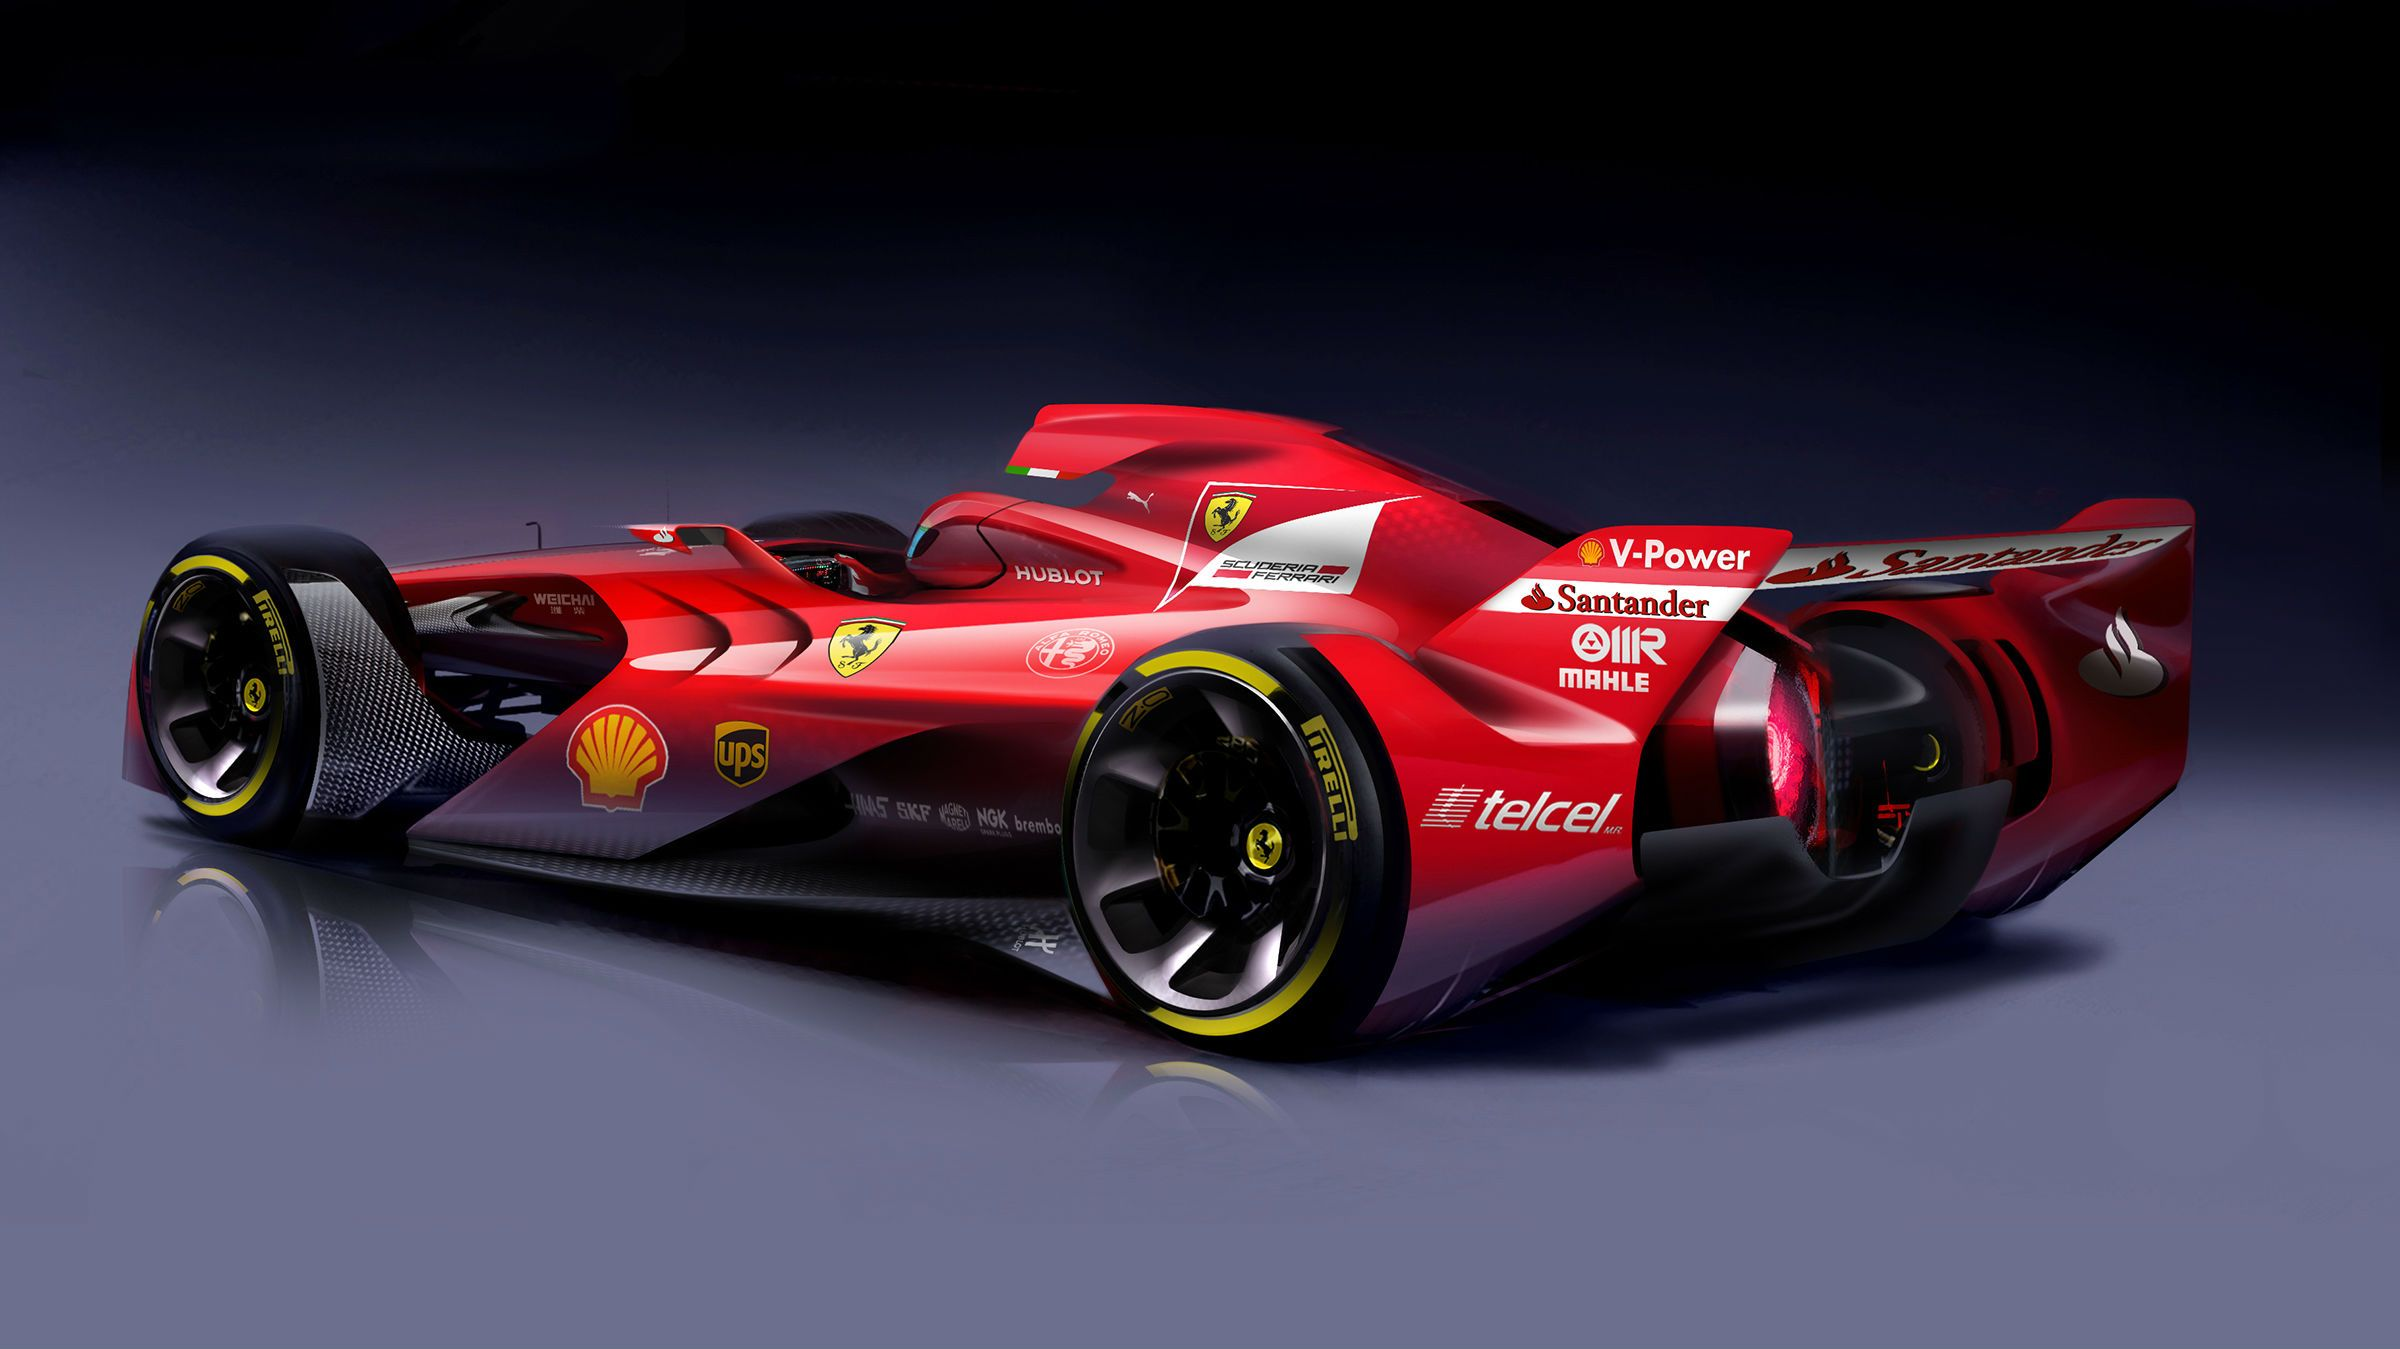 F1 Ferrari Desktop Wallpapers Top Free F1 Ferrari Desktop